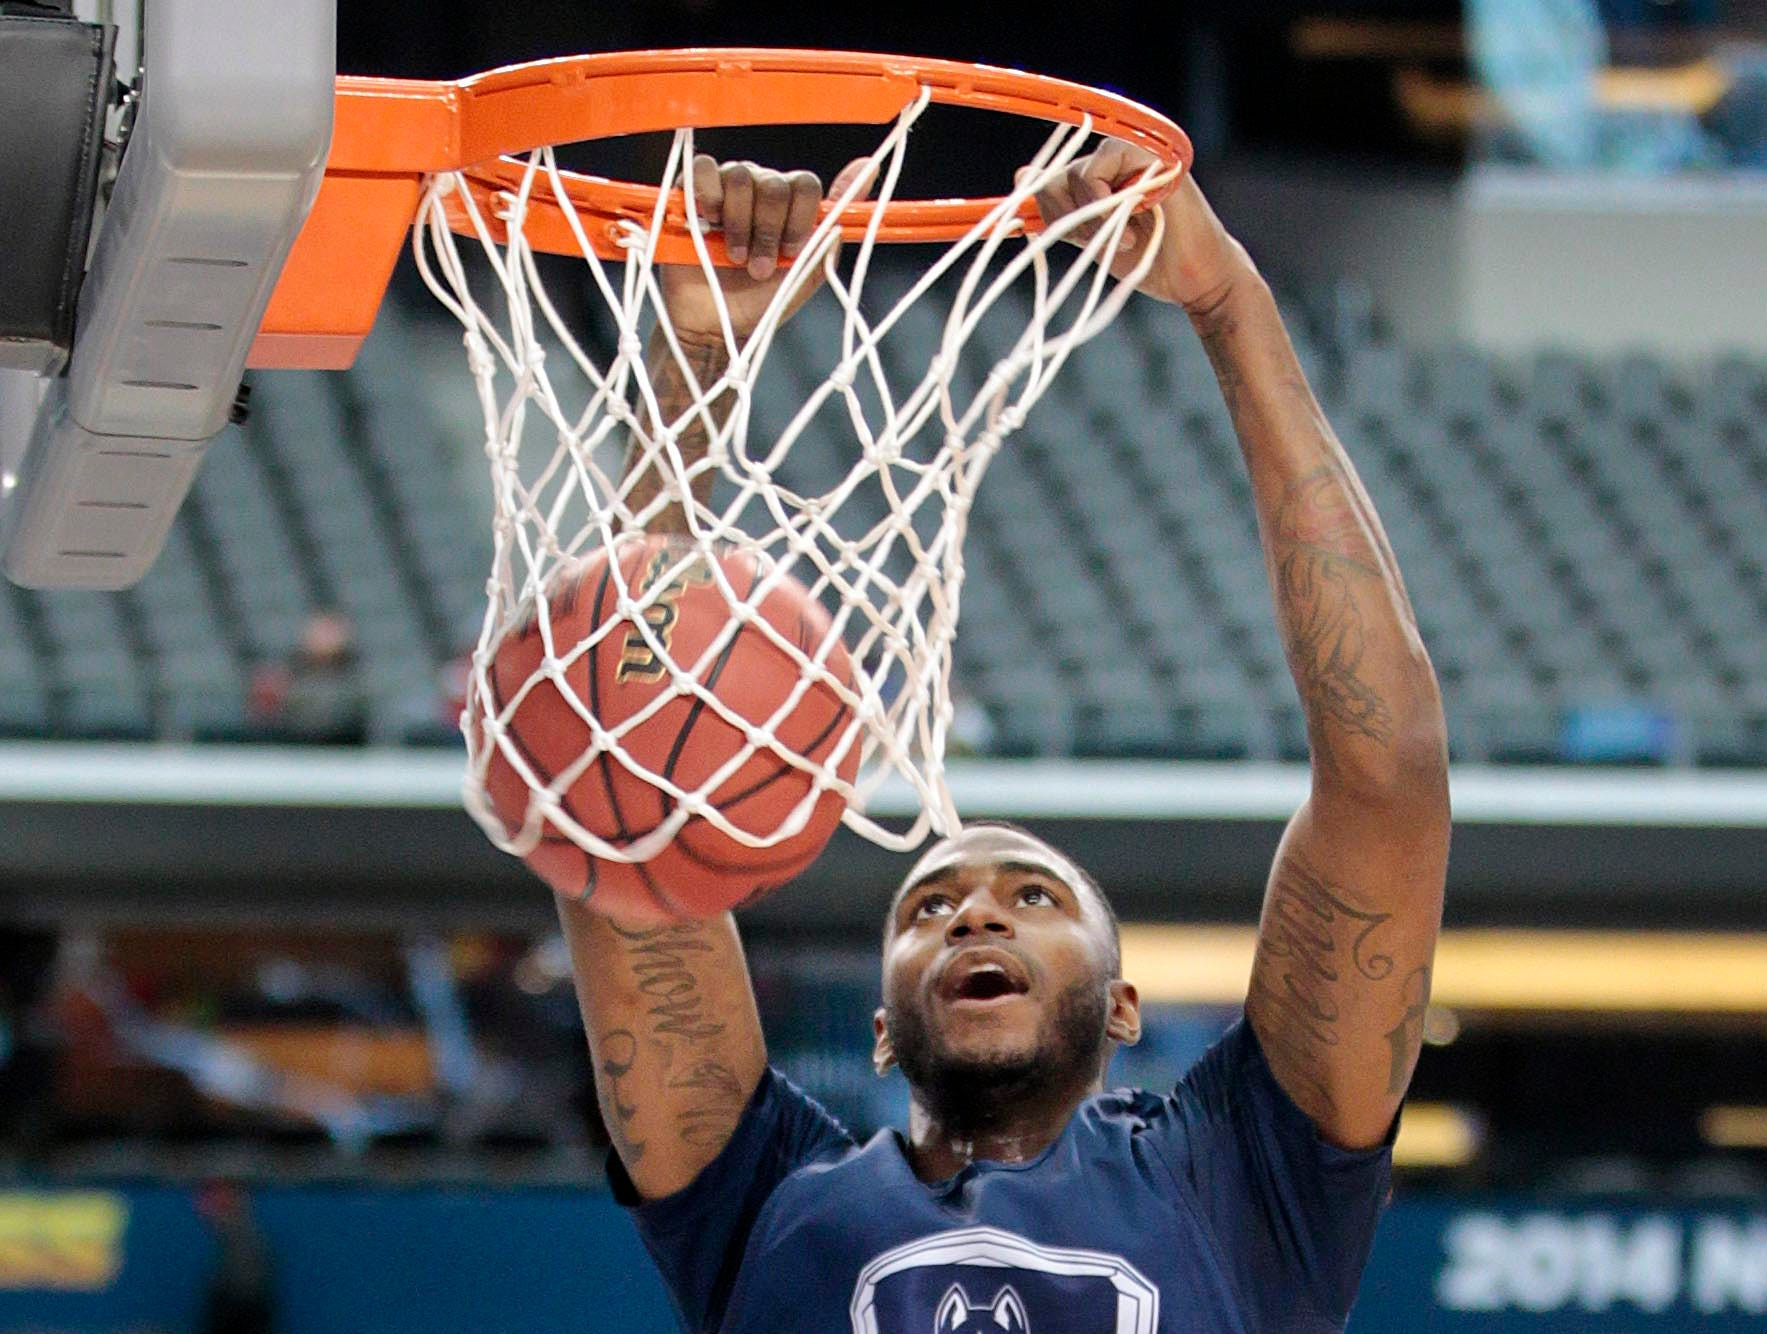 Phillip Nolan, a Milwaukee Riverside High School graduate, was a starter on the 2014 national championship team at the University of Connecticut. He also started in two NCAA Tournament games in 2016.